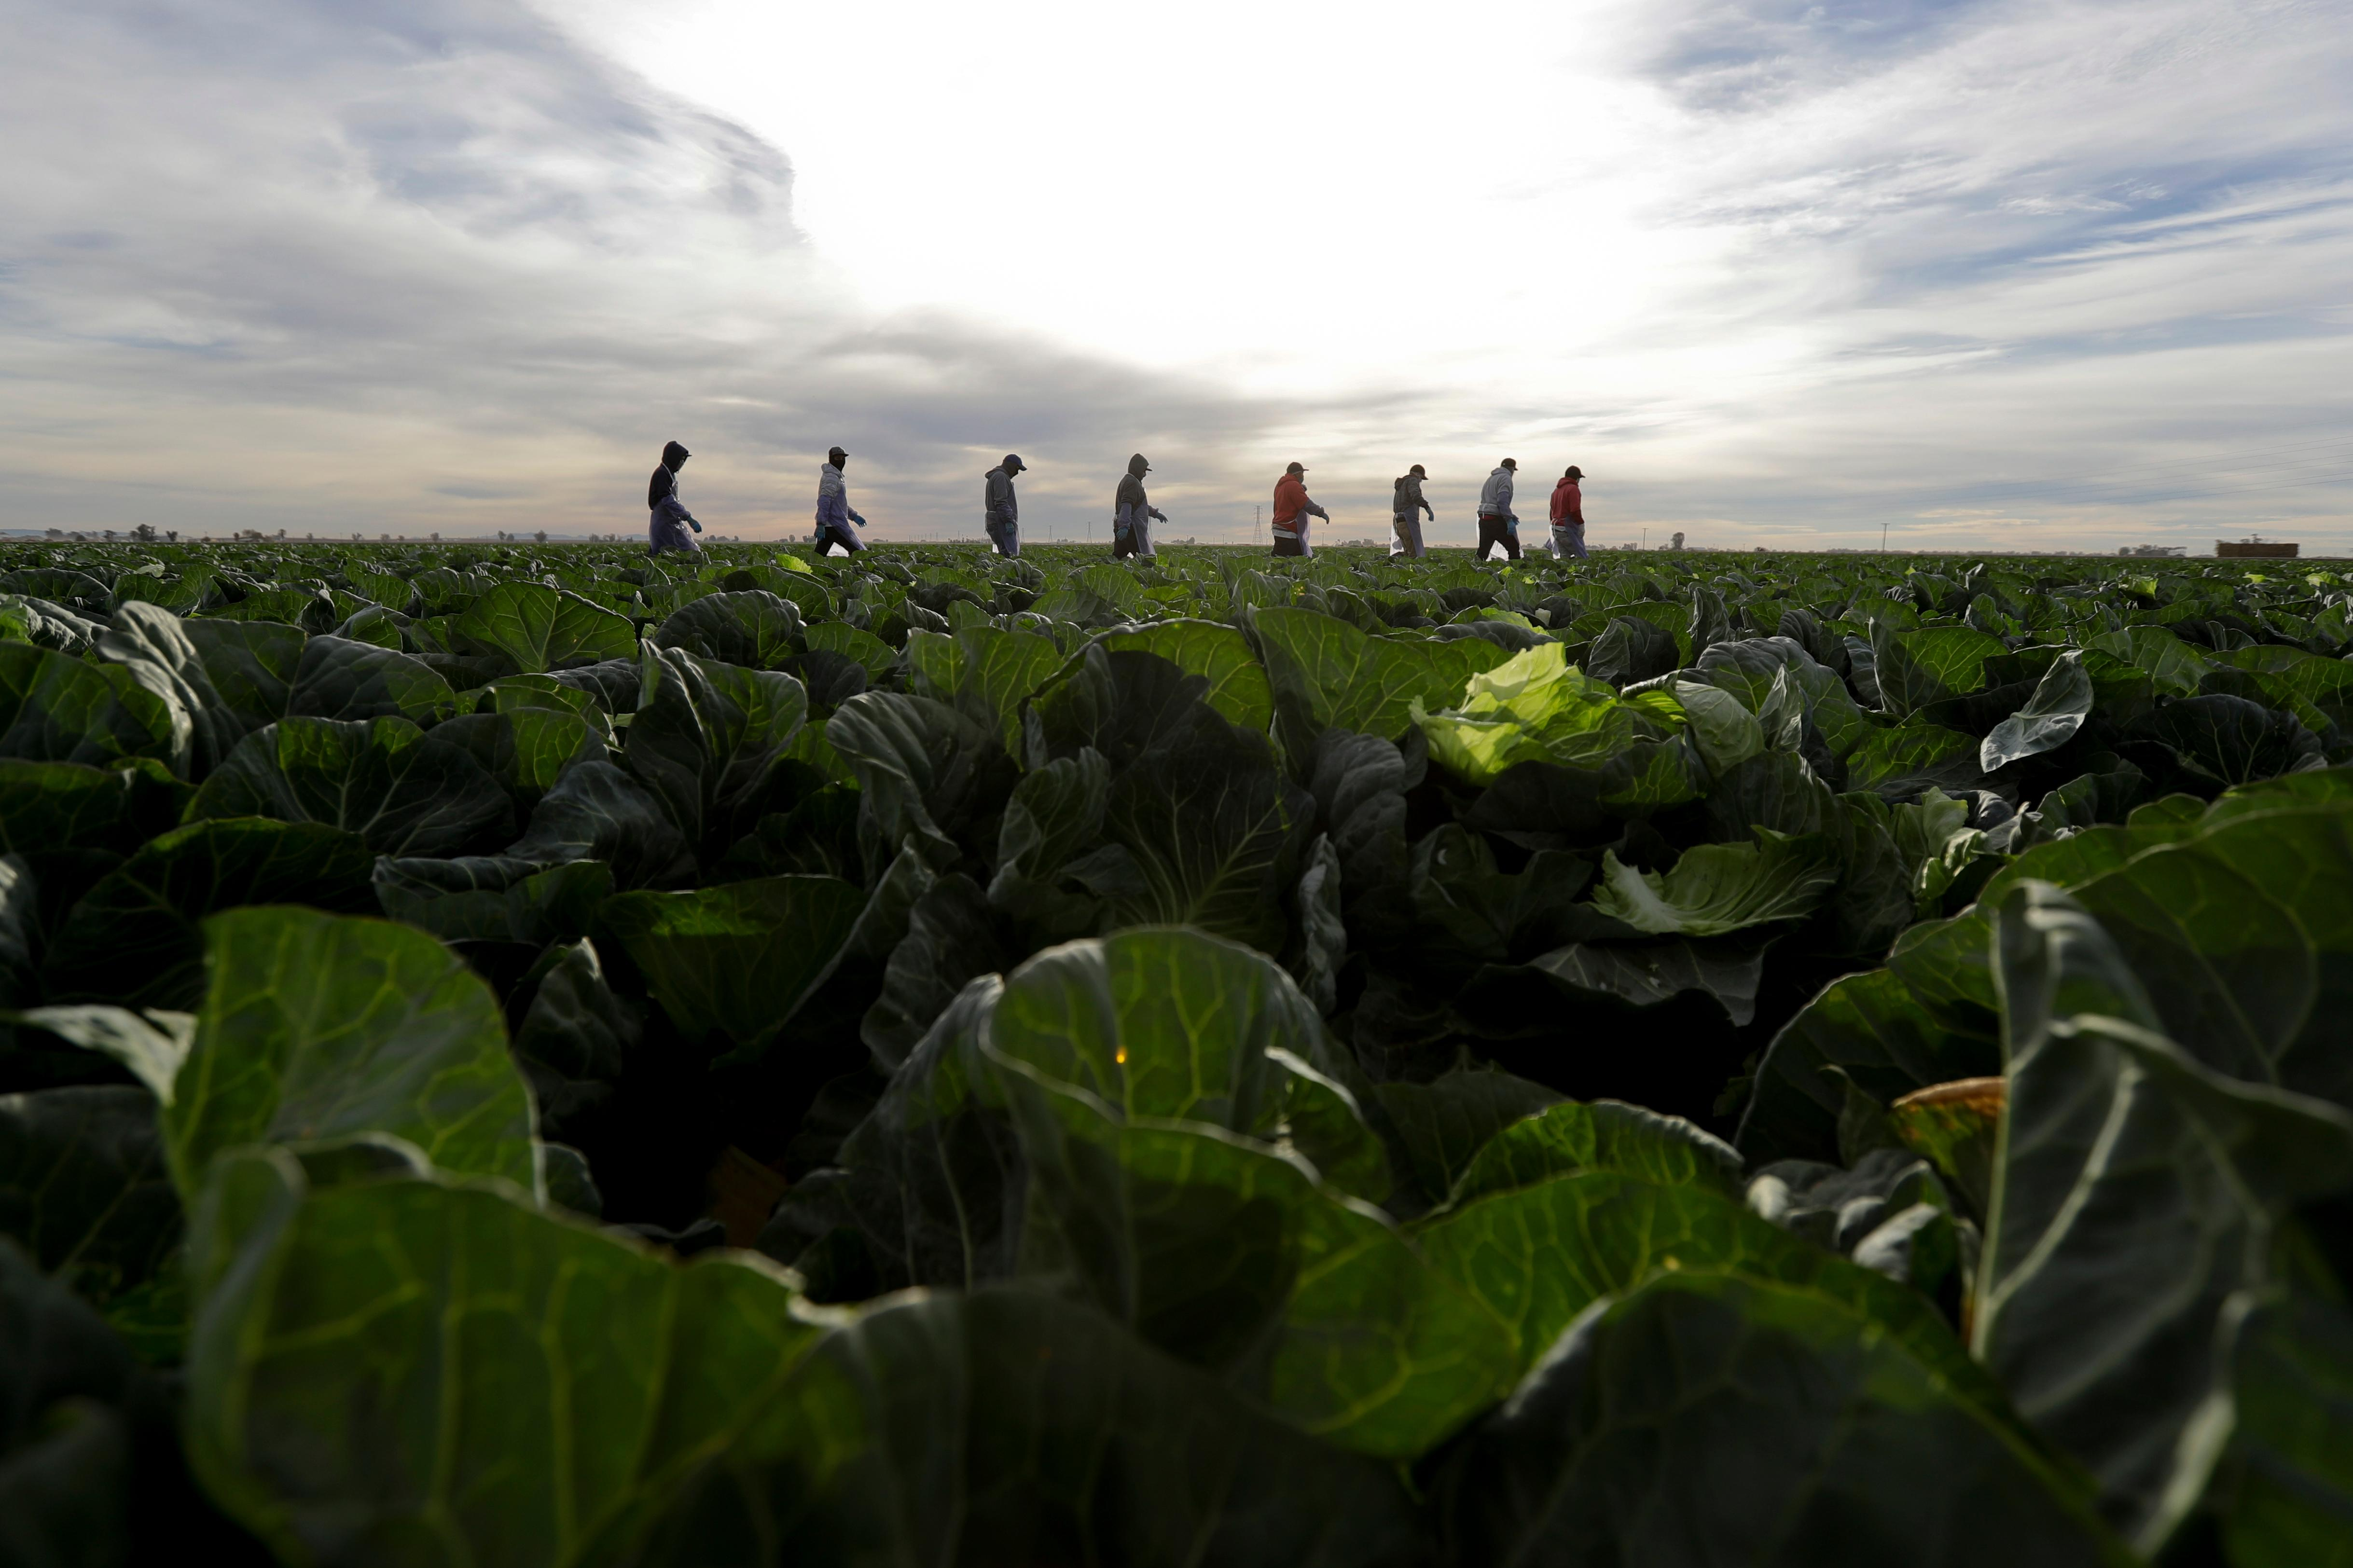 "In this March 6, 2018 photo, farmworkers walk through a field of cabbage during harvest outside of Calexico, Calif. For decades, cross-border commuters have picked lettuce, carrots, broccoli, onions, cauliflower and other vegetables that make California's Imperial Valley ""America's Salad Bowl"" from December through March. As Trump visits the border for the first time as president on Tuesday, March 13, the harvest is a reminder of how little has changed despite heated rhetoric in Washington. (AP Photo/Gregory Bull)"